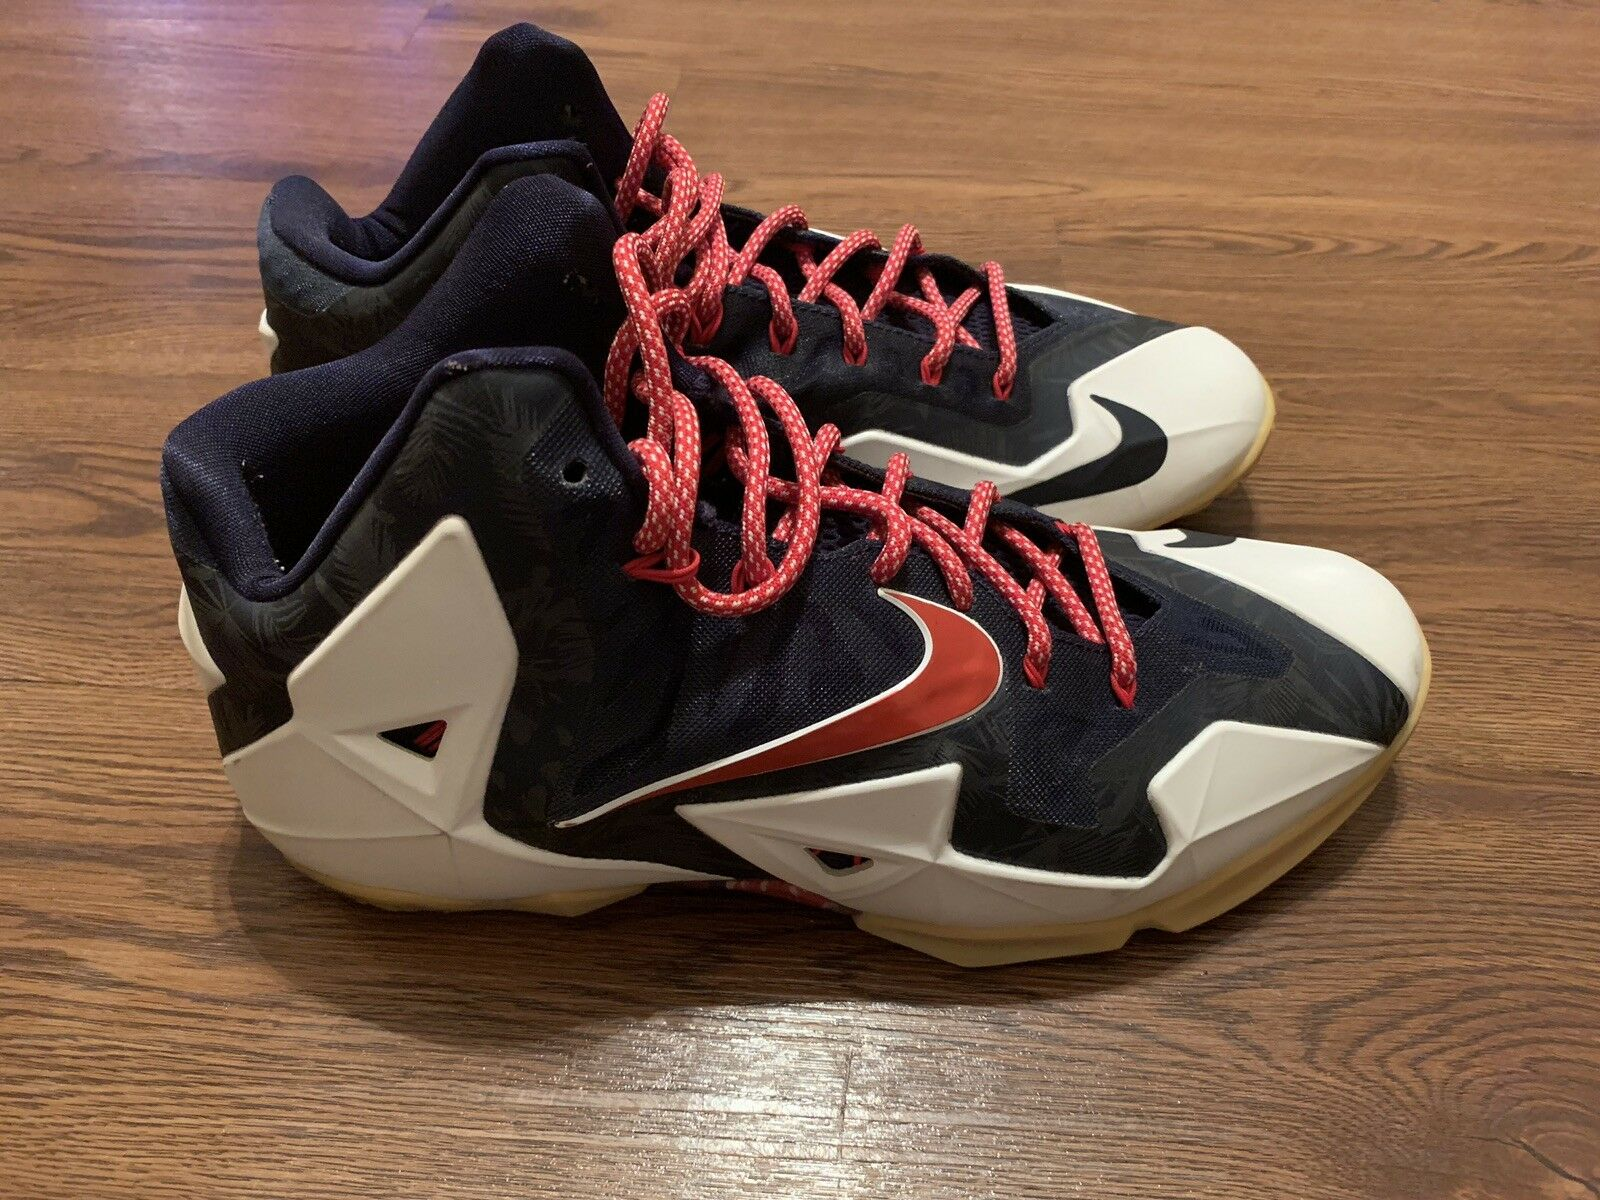 low priced f07f3 7fc8c VNDS VNDS VNDS Independence Day Lebron 11s Nikes Sz 13 f200c2